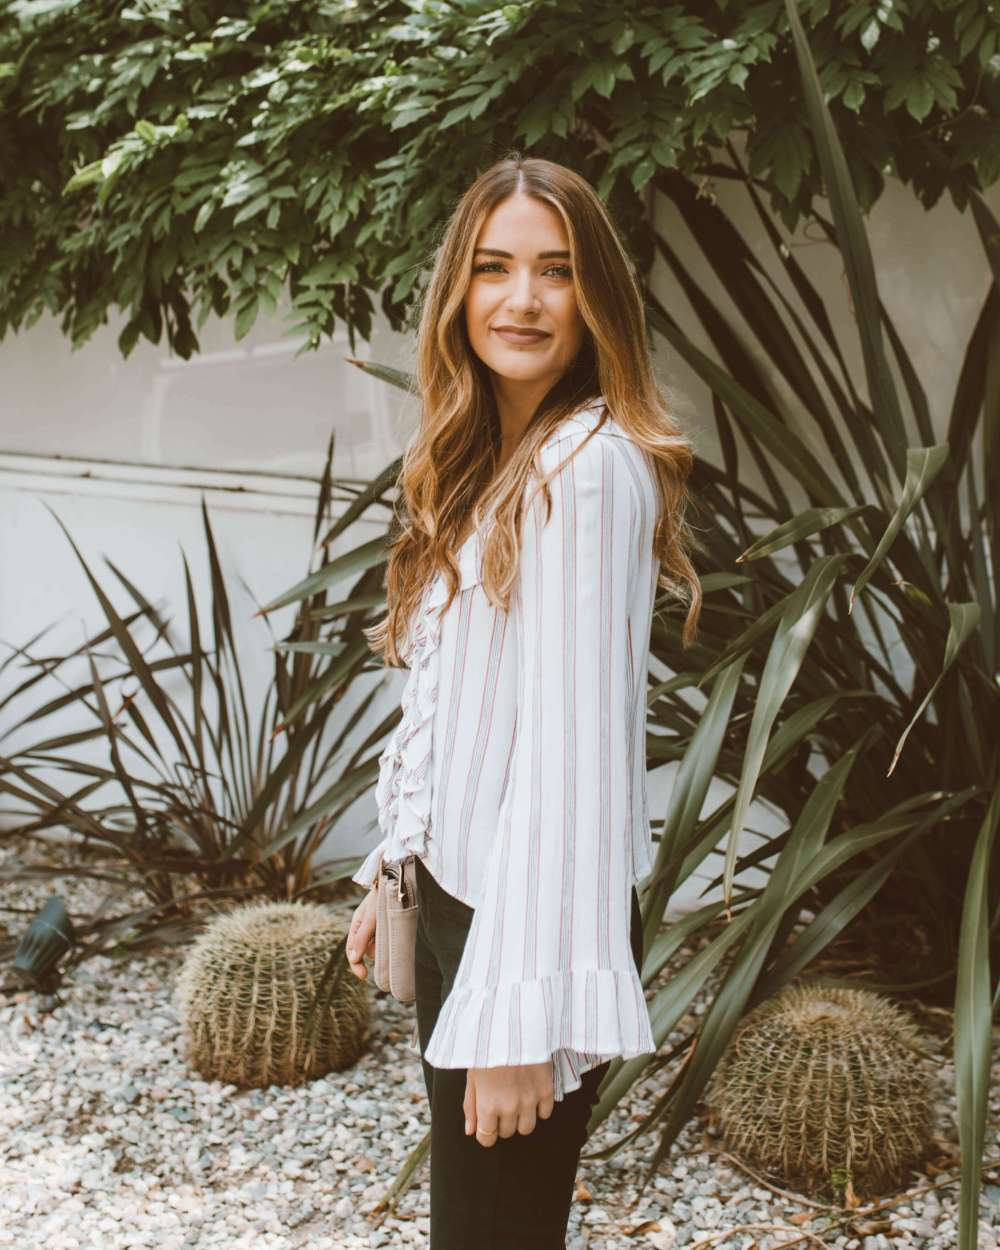 Lightweight Blouse for Summer | Twinspiration